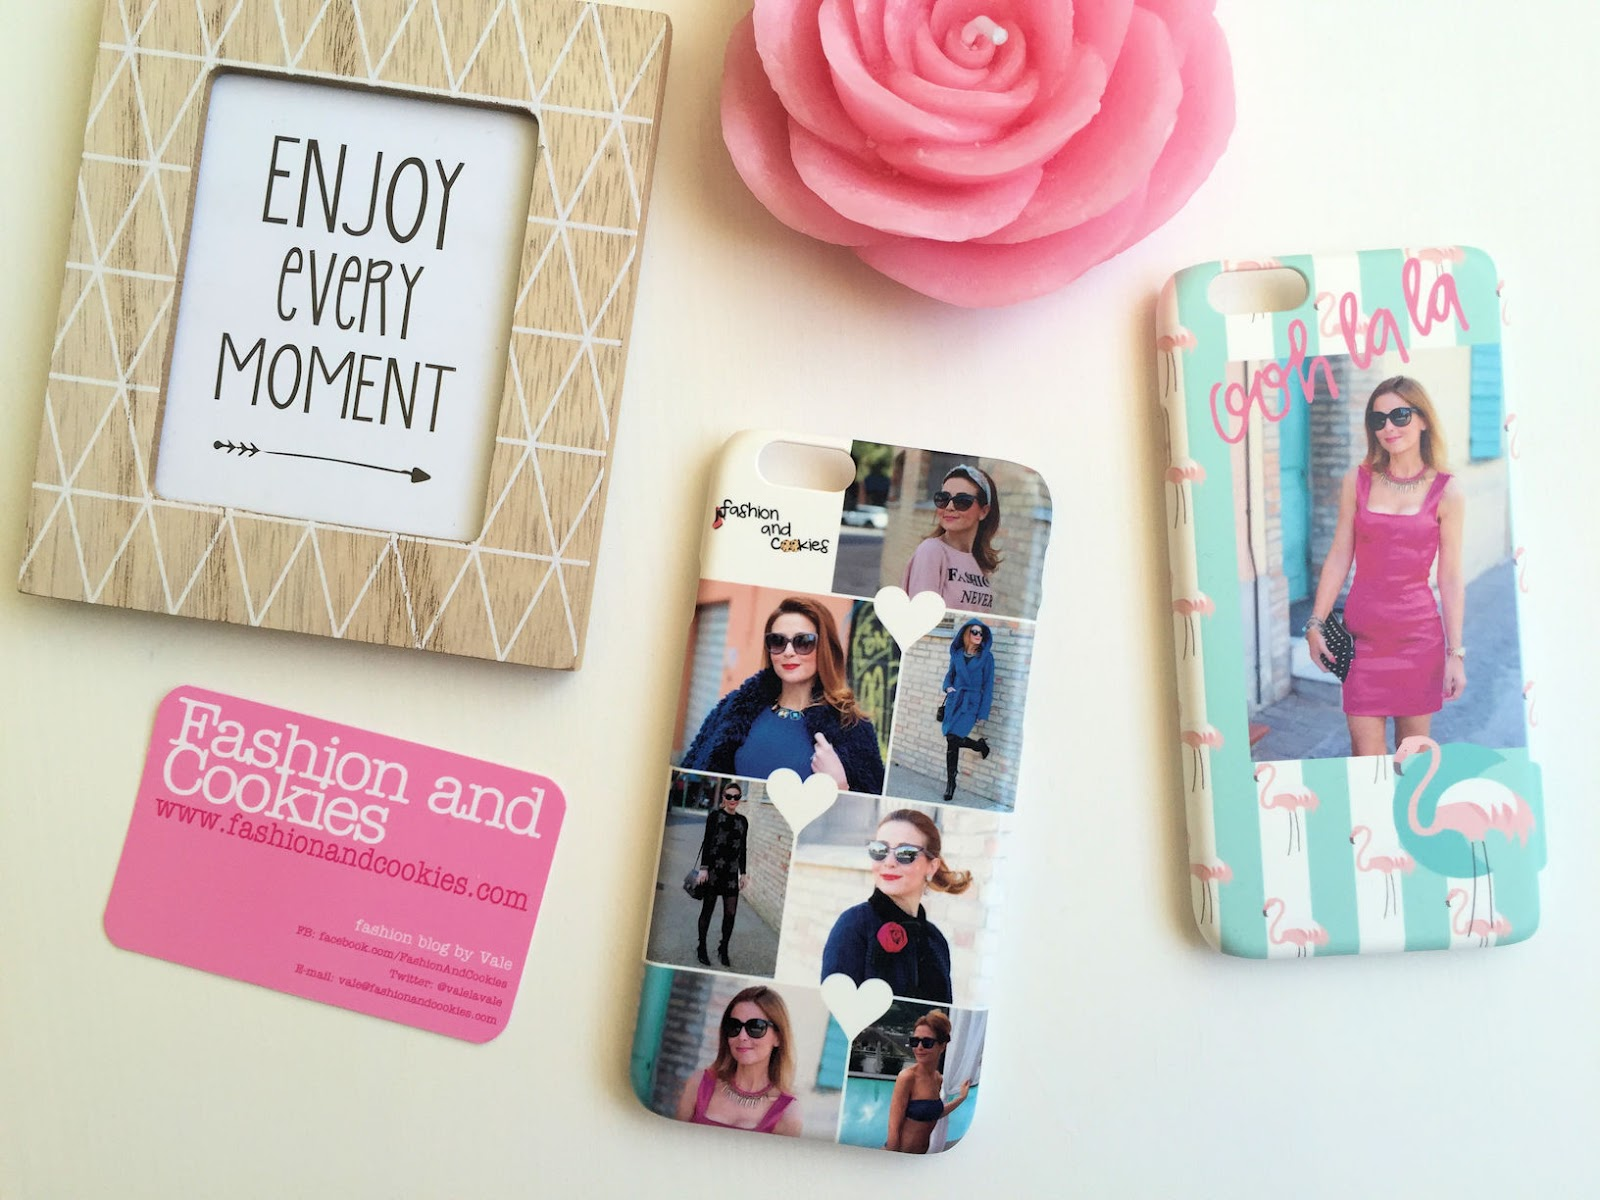 Make your custom iPhone cover with Caseapp, crea la tua cover personalizzata con Caseapp on Fashion and Cookies fashion blog, fashion blogger